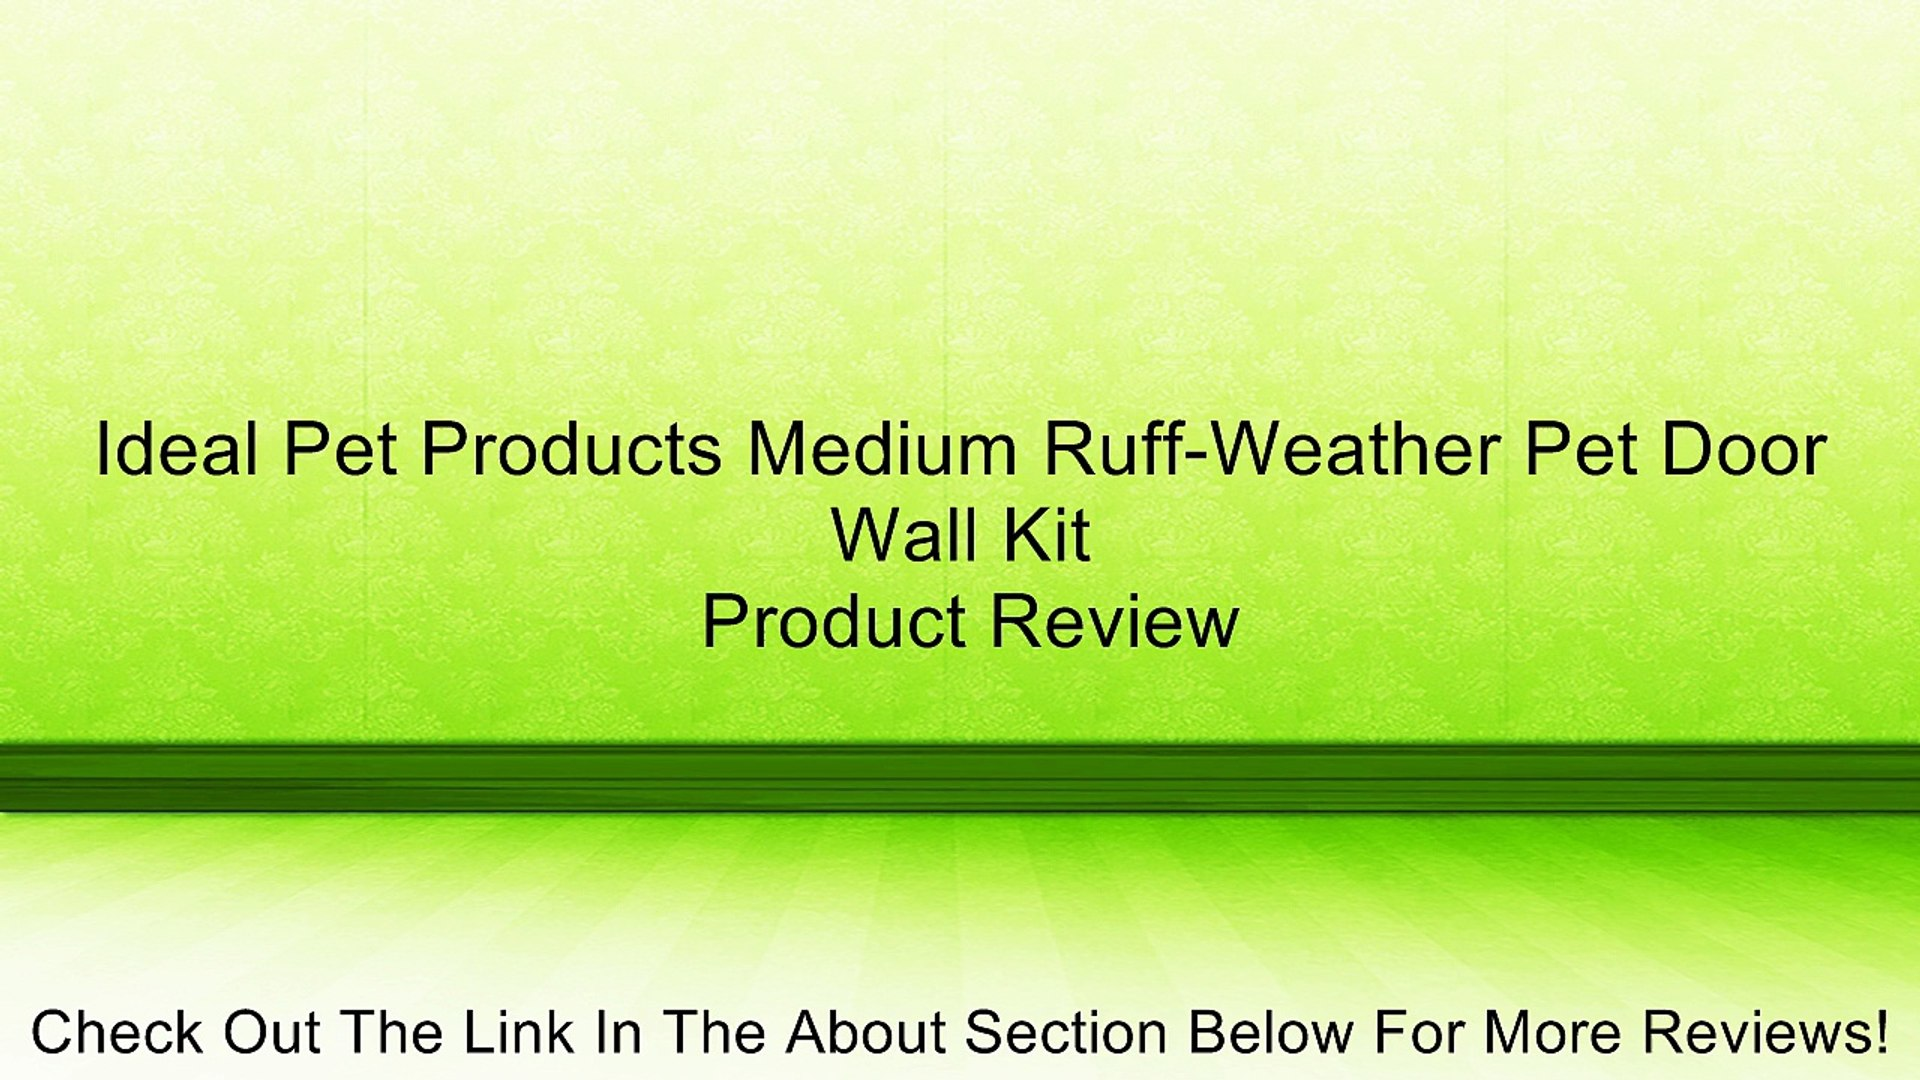 Ideal Pet Products Medium Ruff-Weather Pet Door Wall Kit Review